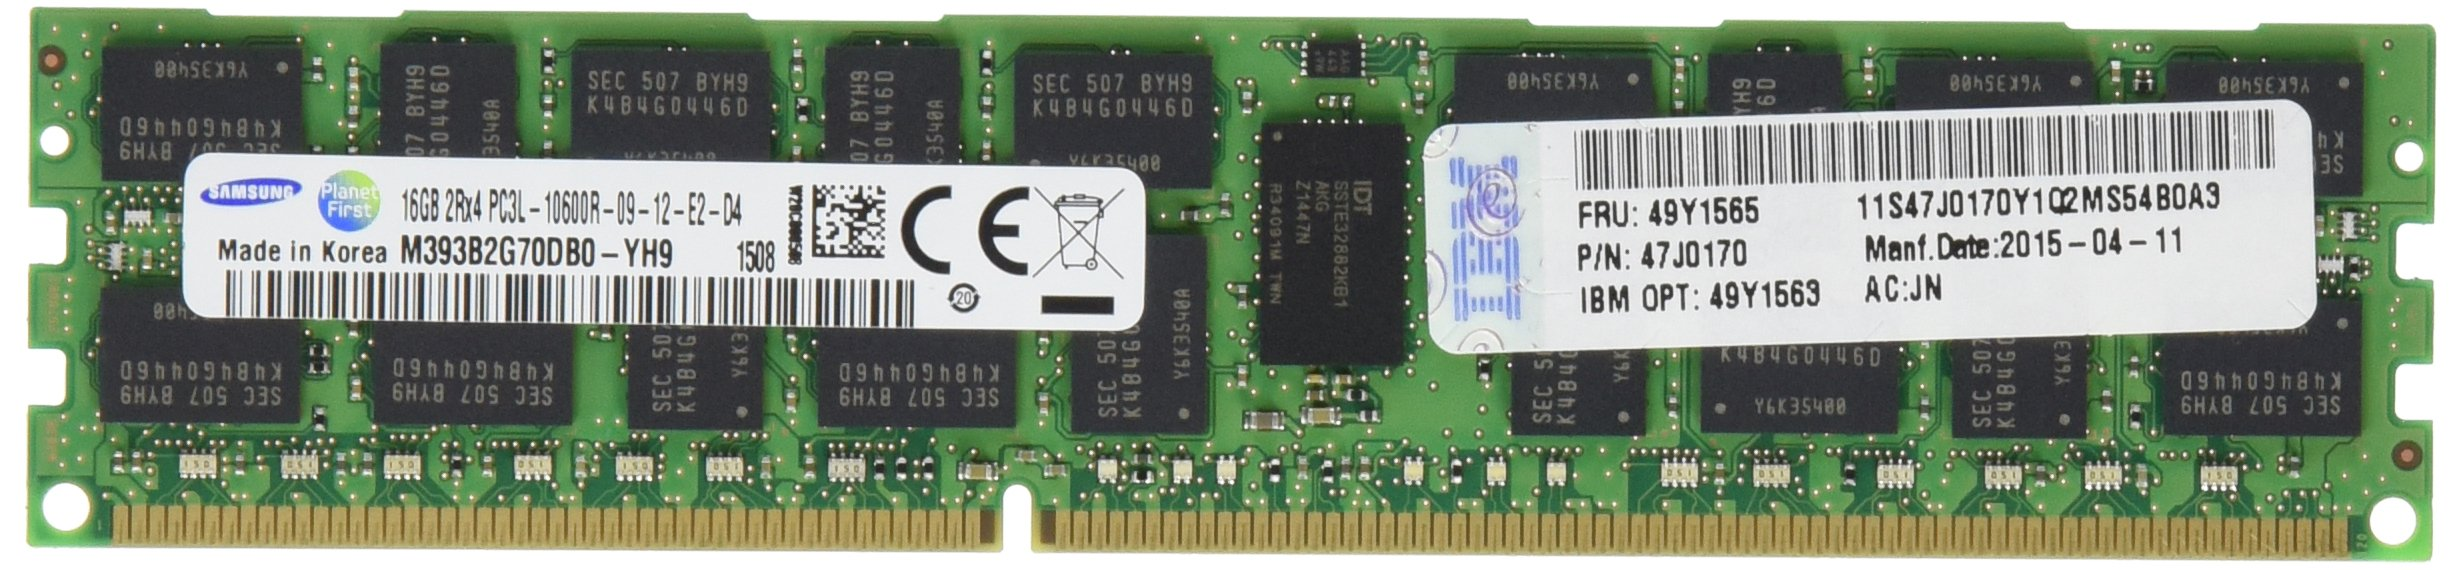 IBM 16 GB 2Rx4 1.35V PC3L-10600 1333MHz Memory Module 49Y1563 by IBM